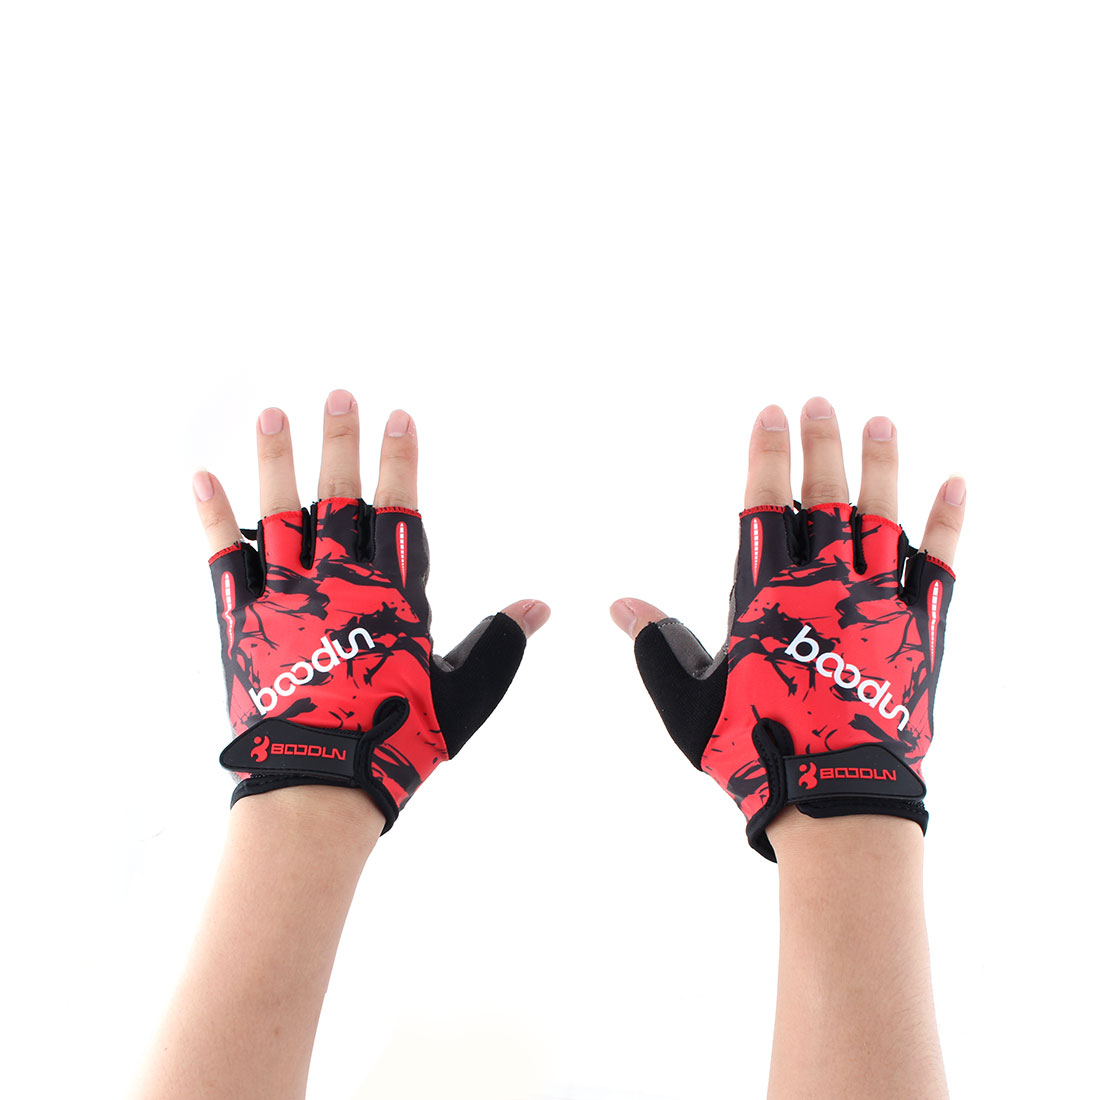 BOODUN Authorized Polyester Exercise Sports Gym Lifting Training Bodybuilding Protector Half Finger Fitness Gloves Red XL Pair